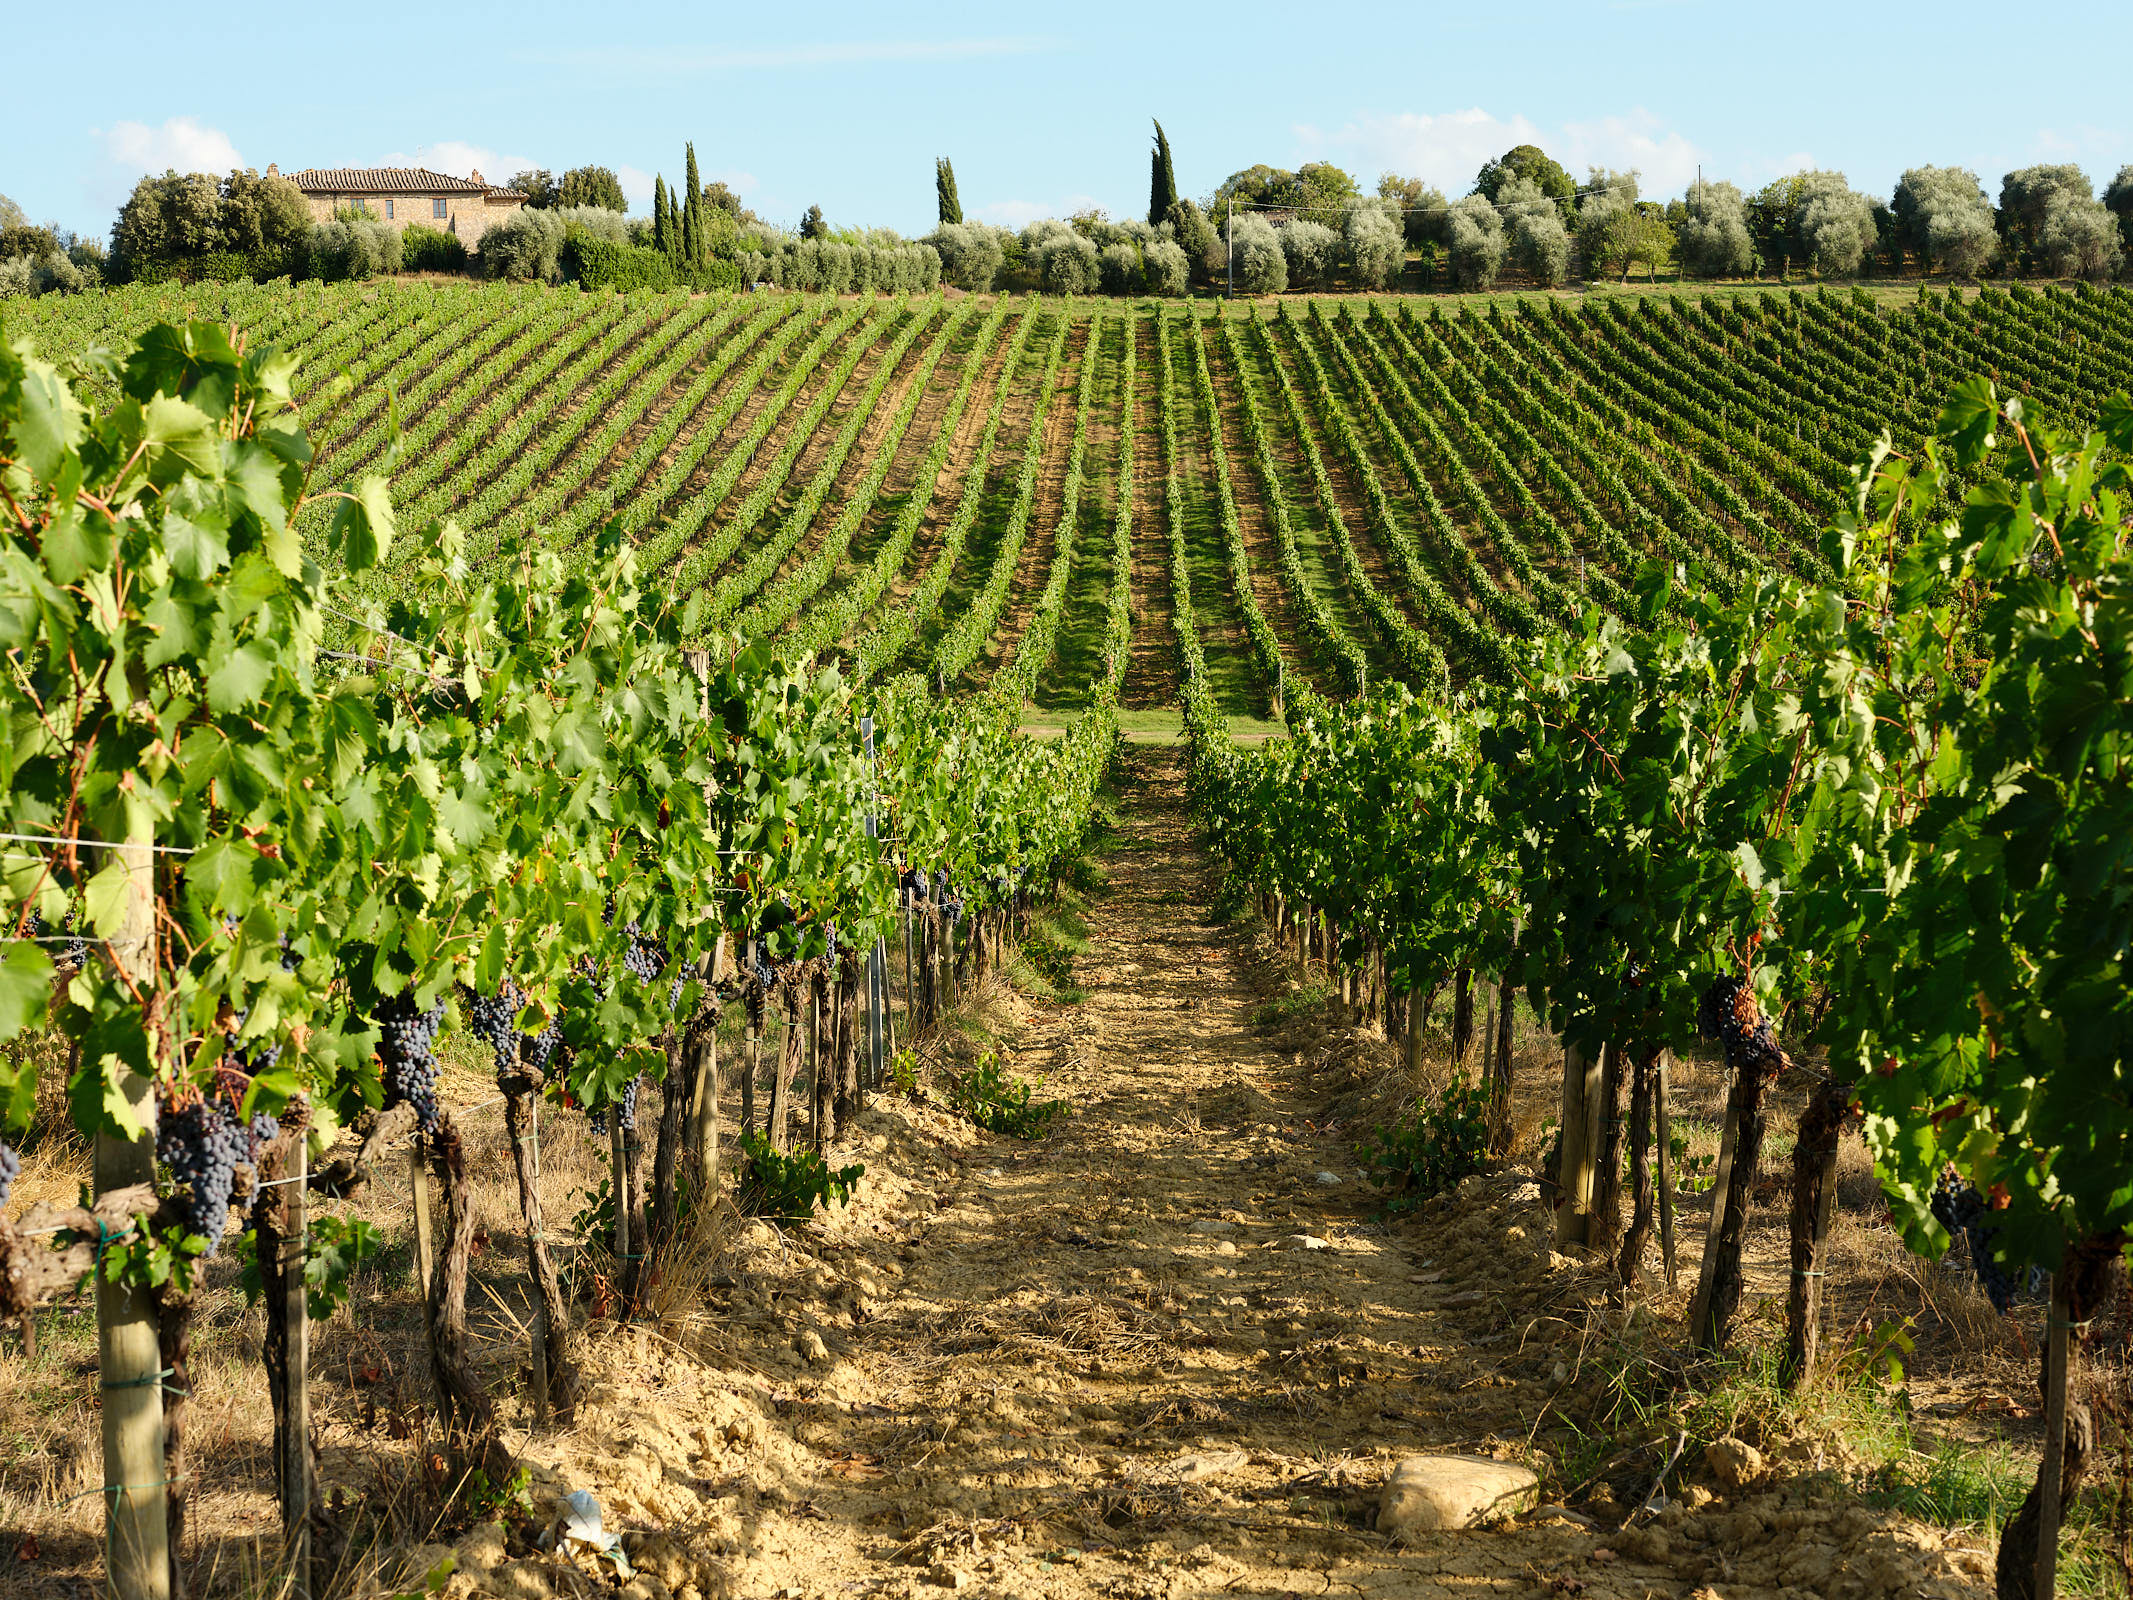 Vineyard, Val d'Orcia, Tuscany